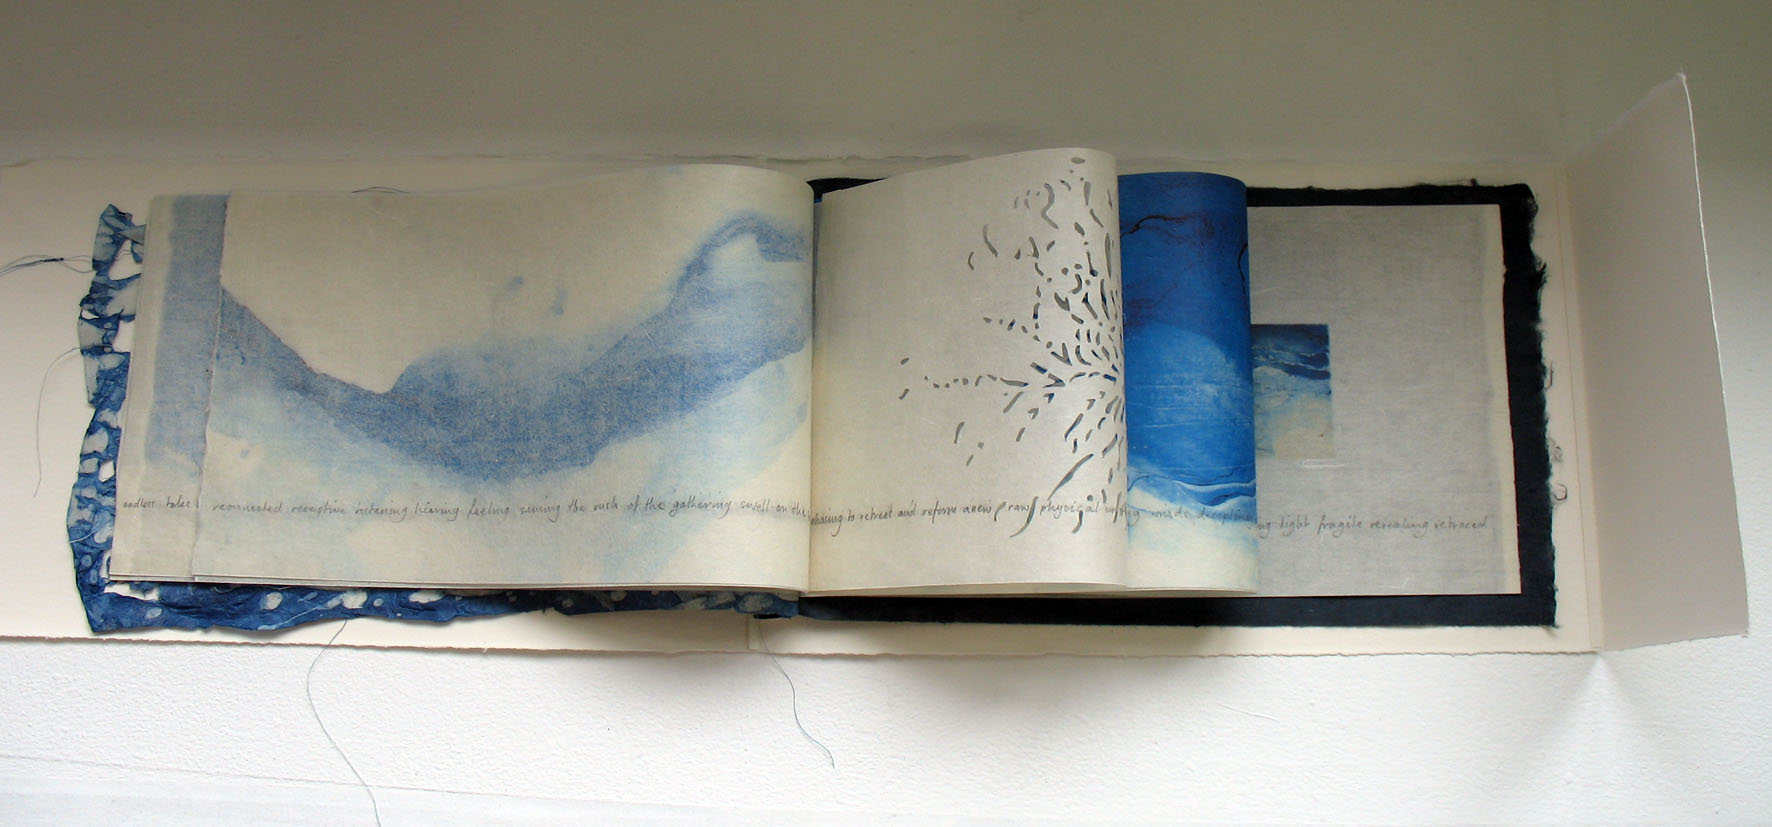 'Traced' 2008 limited ed book 30x15cm